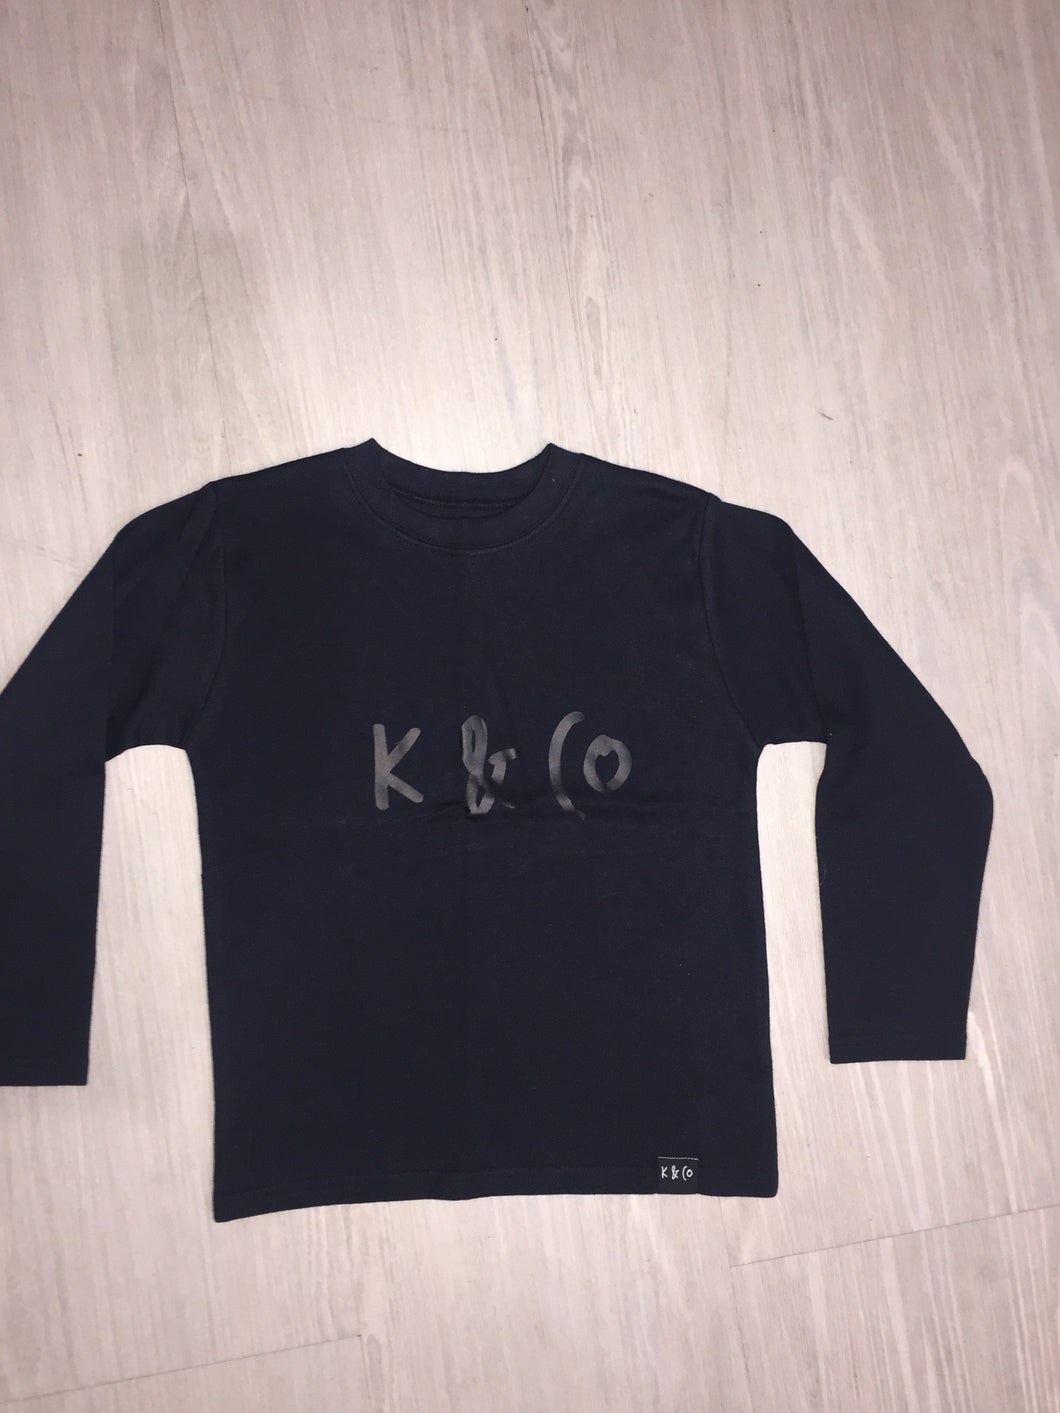 BLACK ON BLACK K & CO (LONG SLEEVE) - FIVE&KNUX